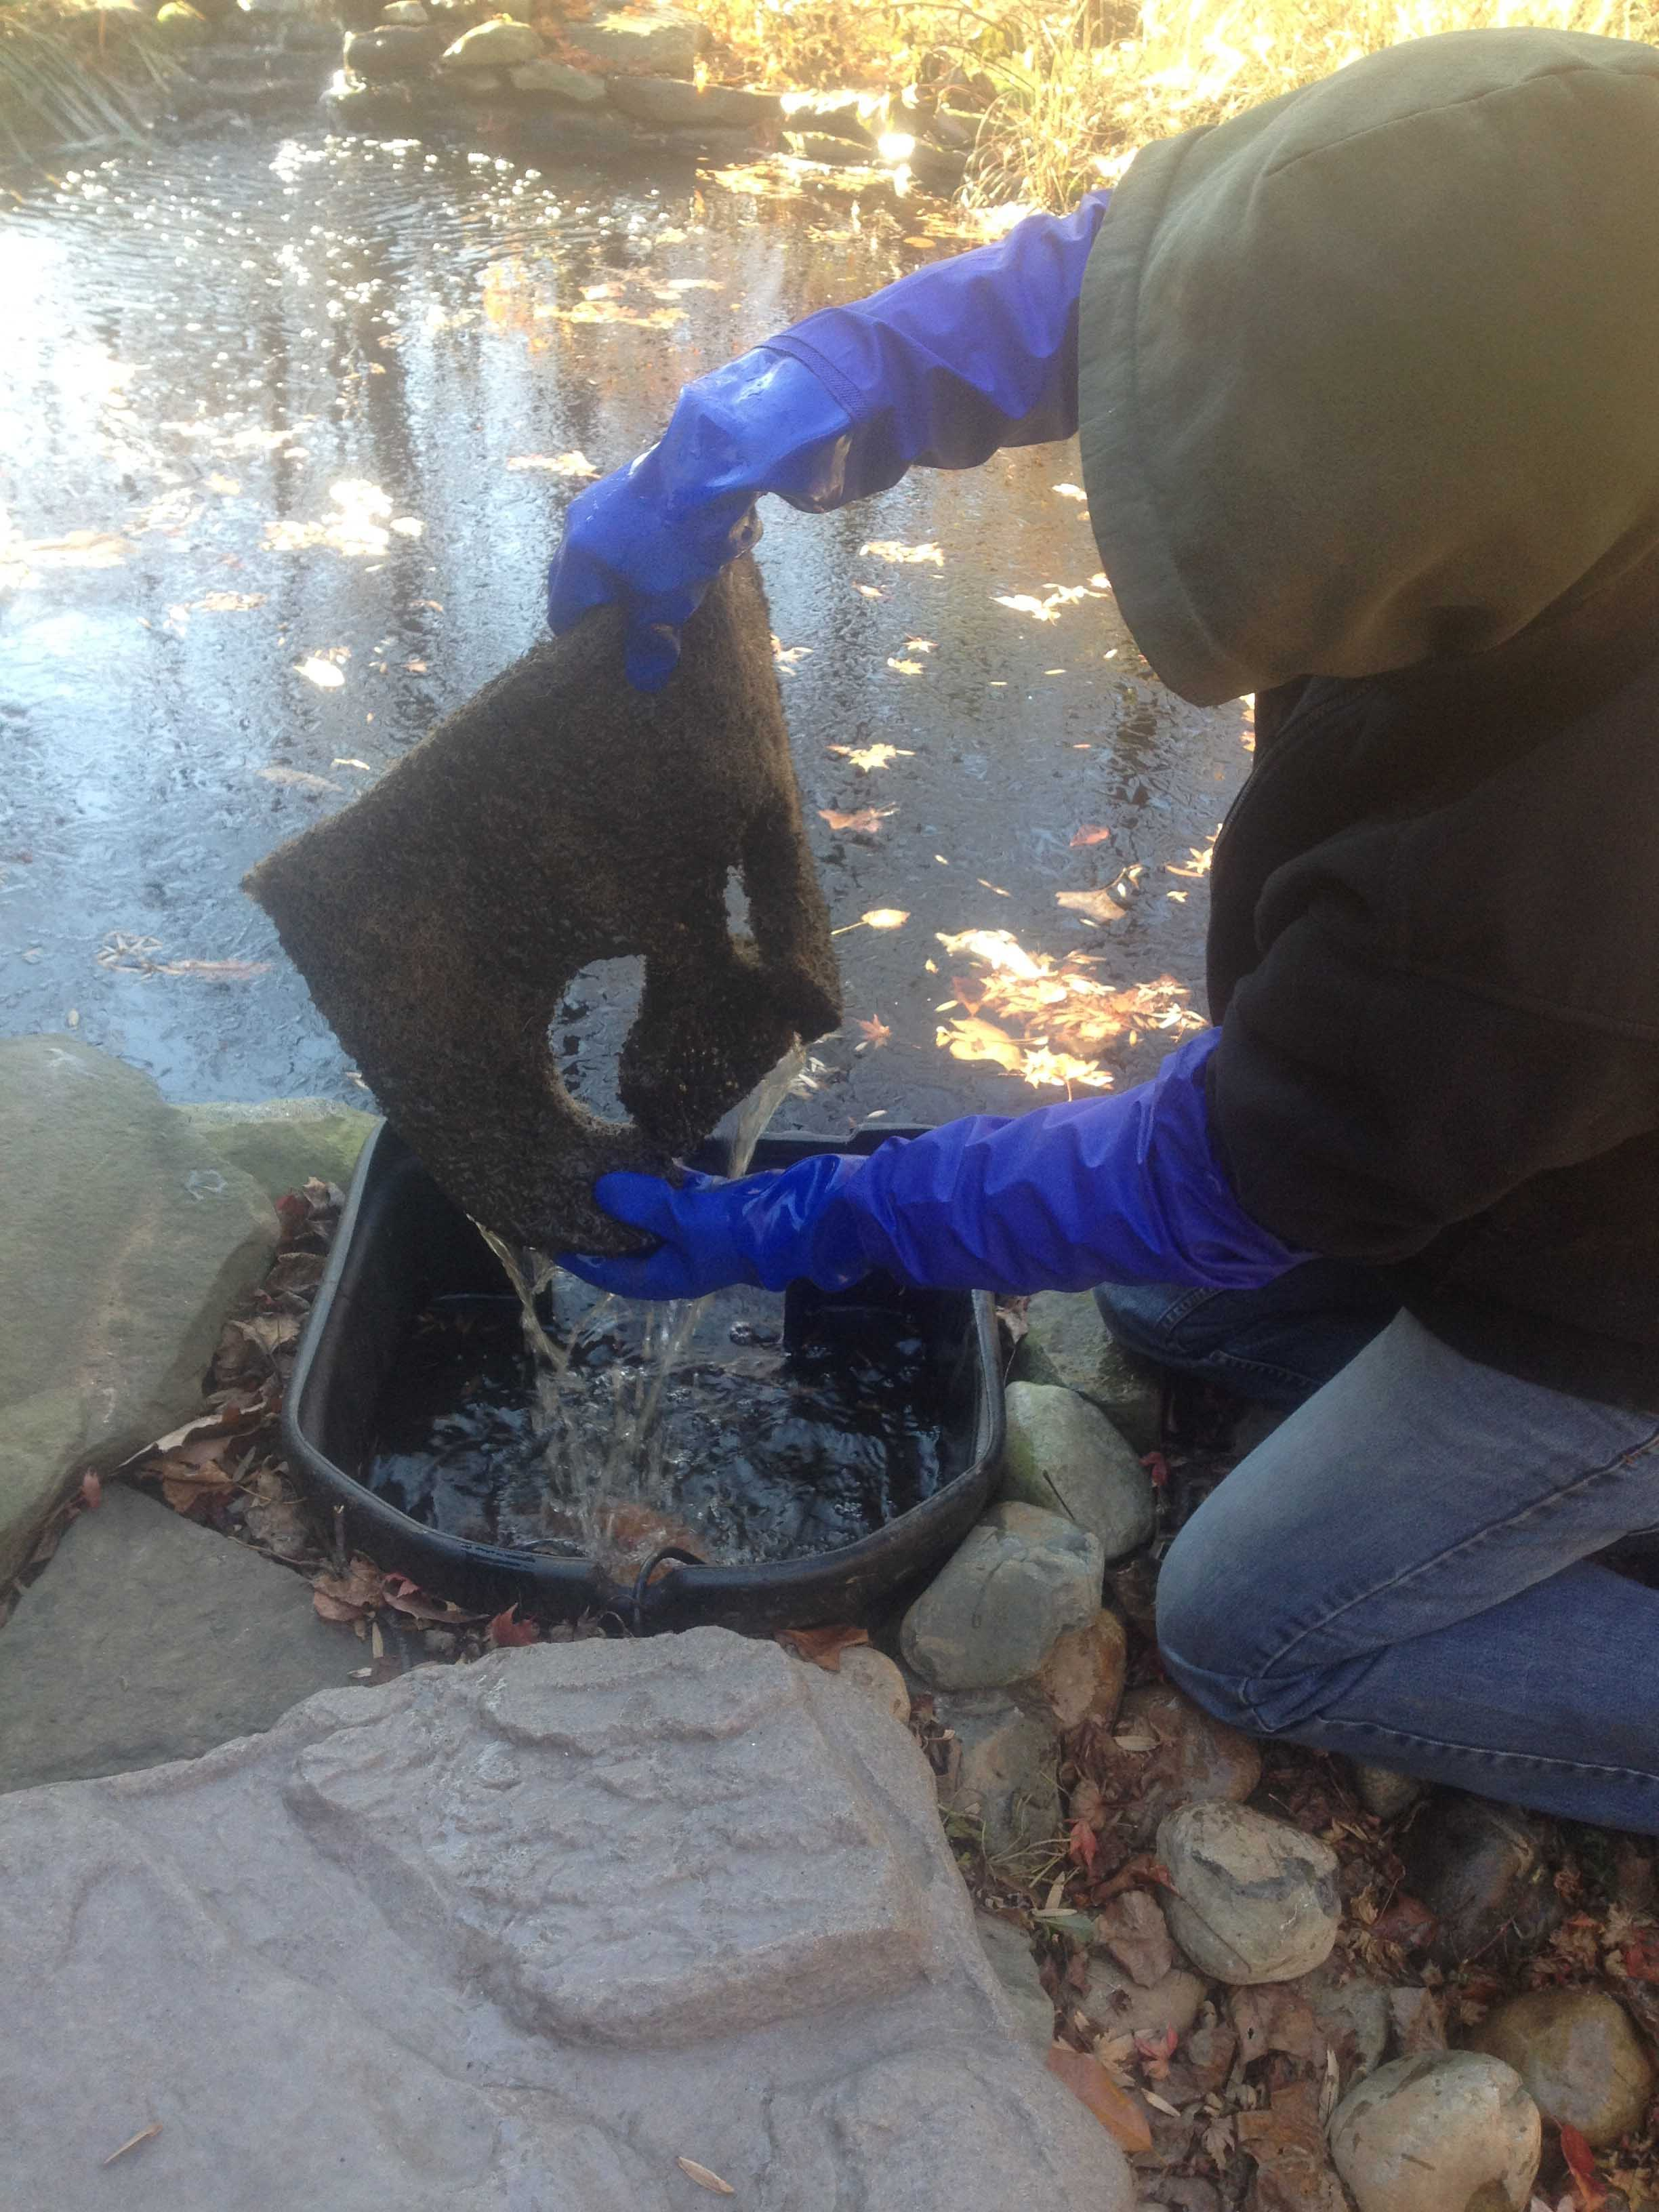 Pond skimmer being cleaned